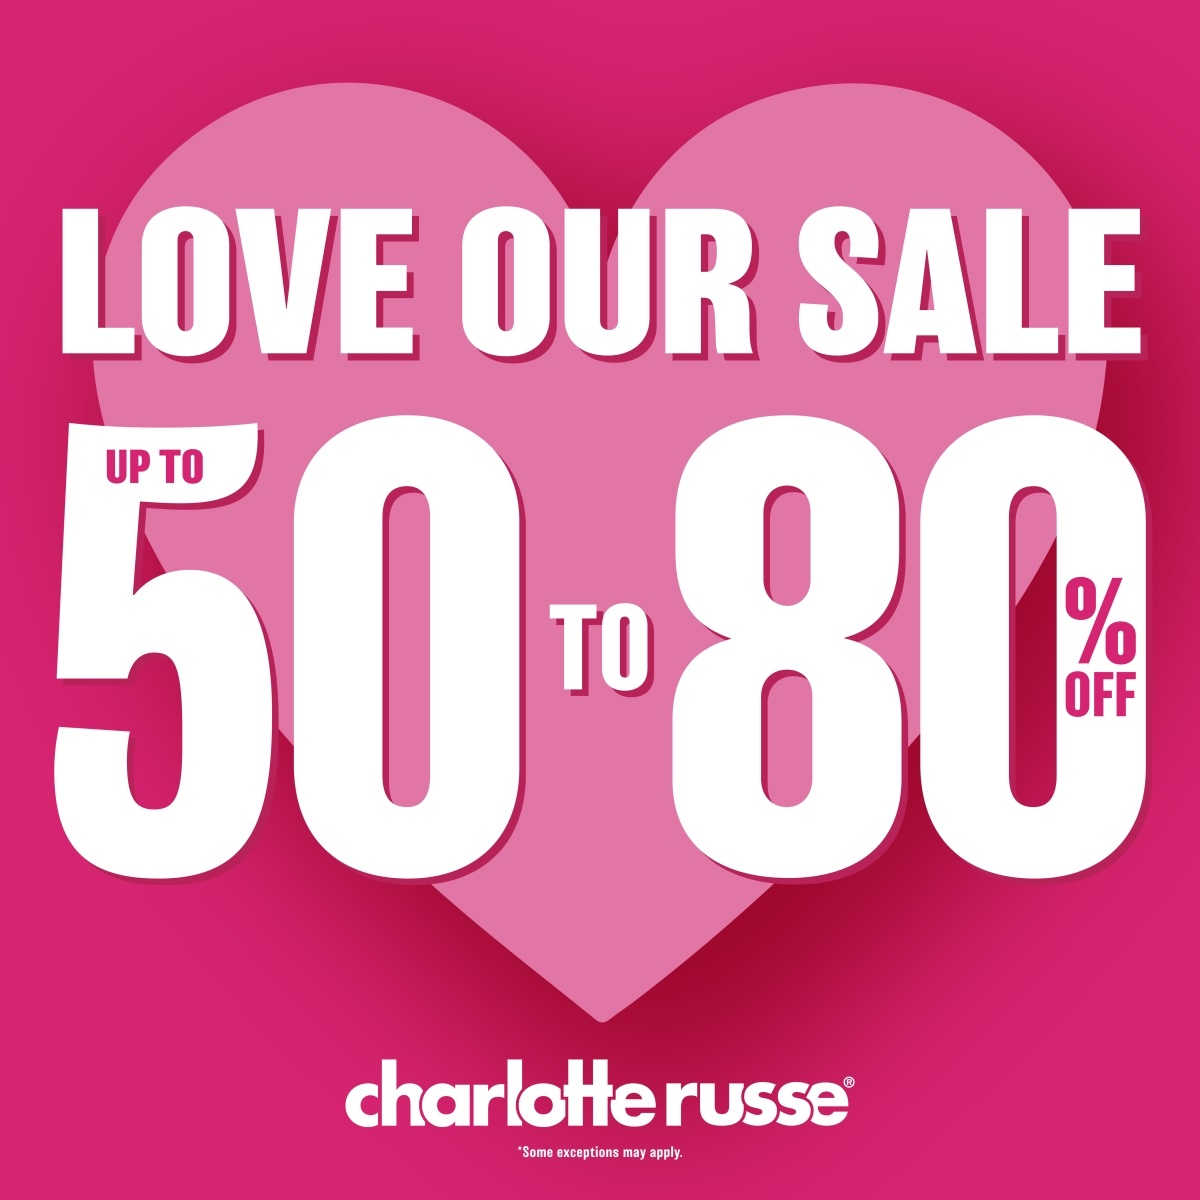 Love Our Sale!